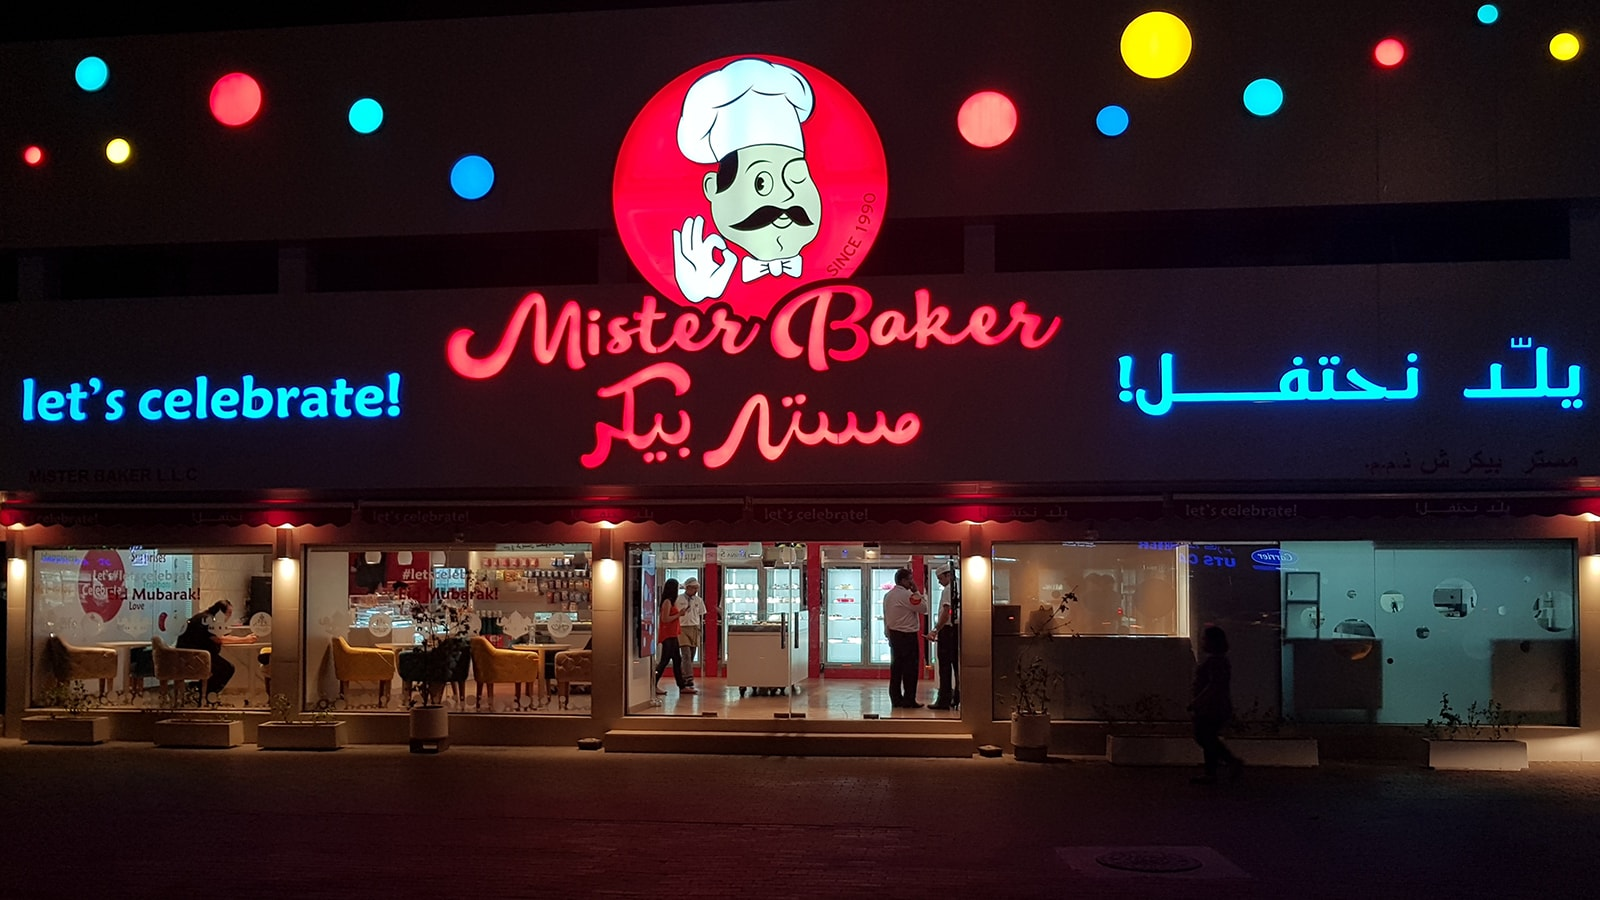 New brand strategy & redesign of UAE's Mister Baker chain of stores